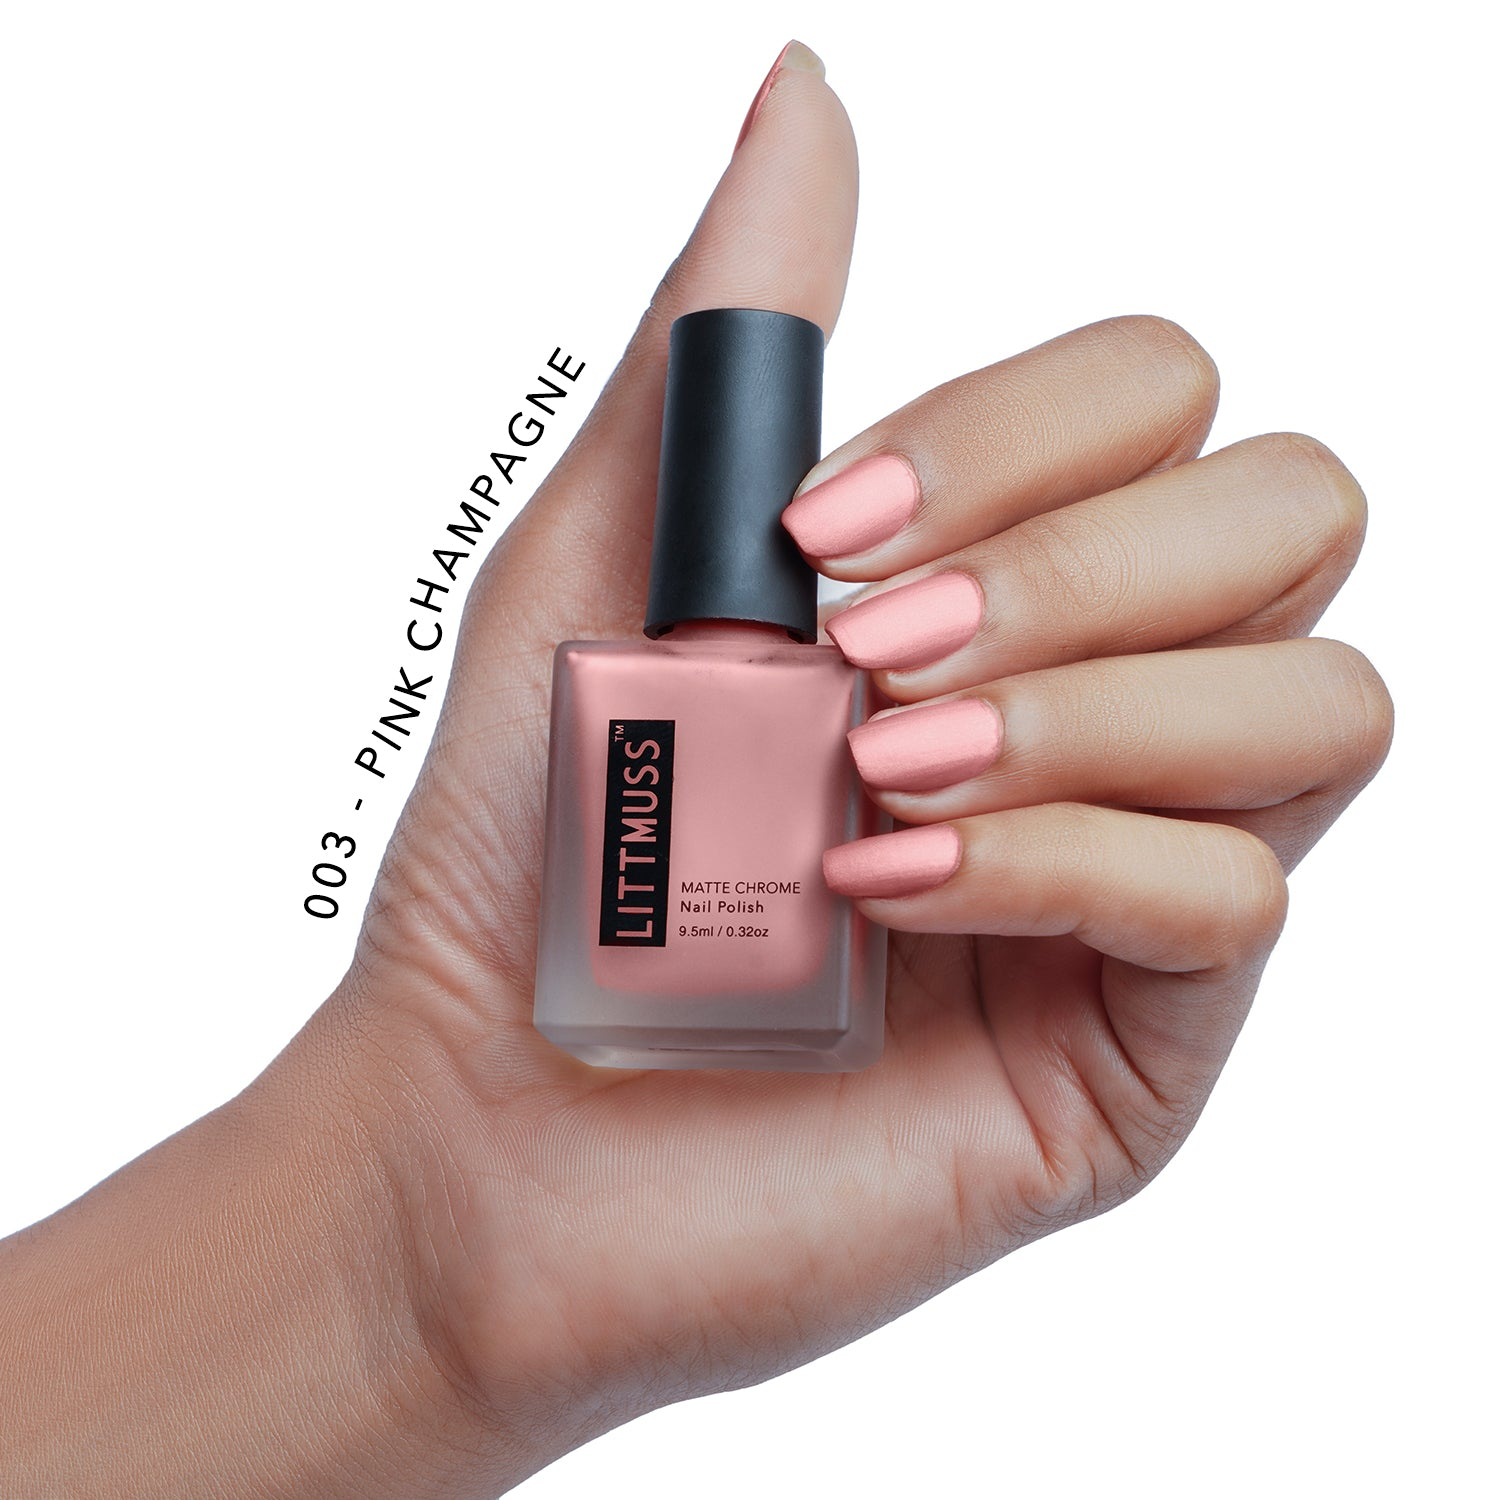 LITTMUSS Matte Chrome Nail Polish Pink Blush Combo